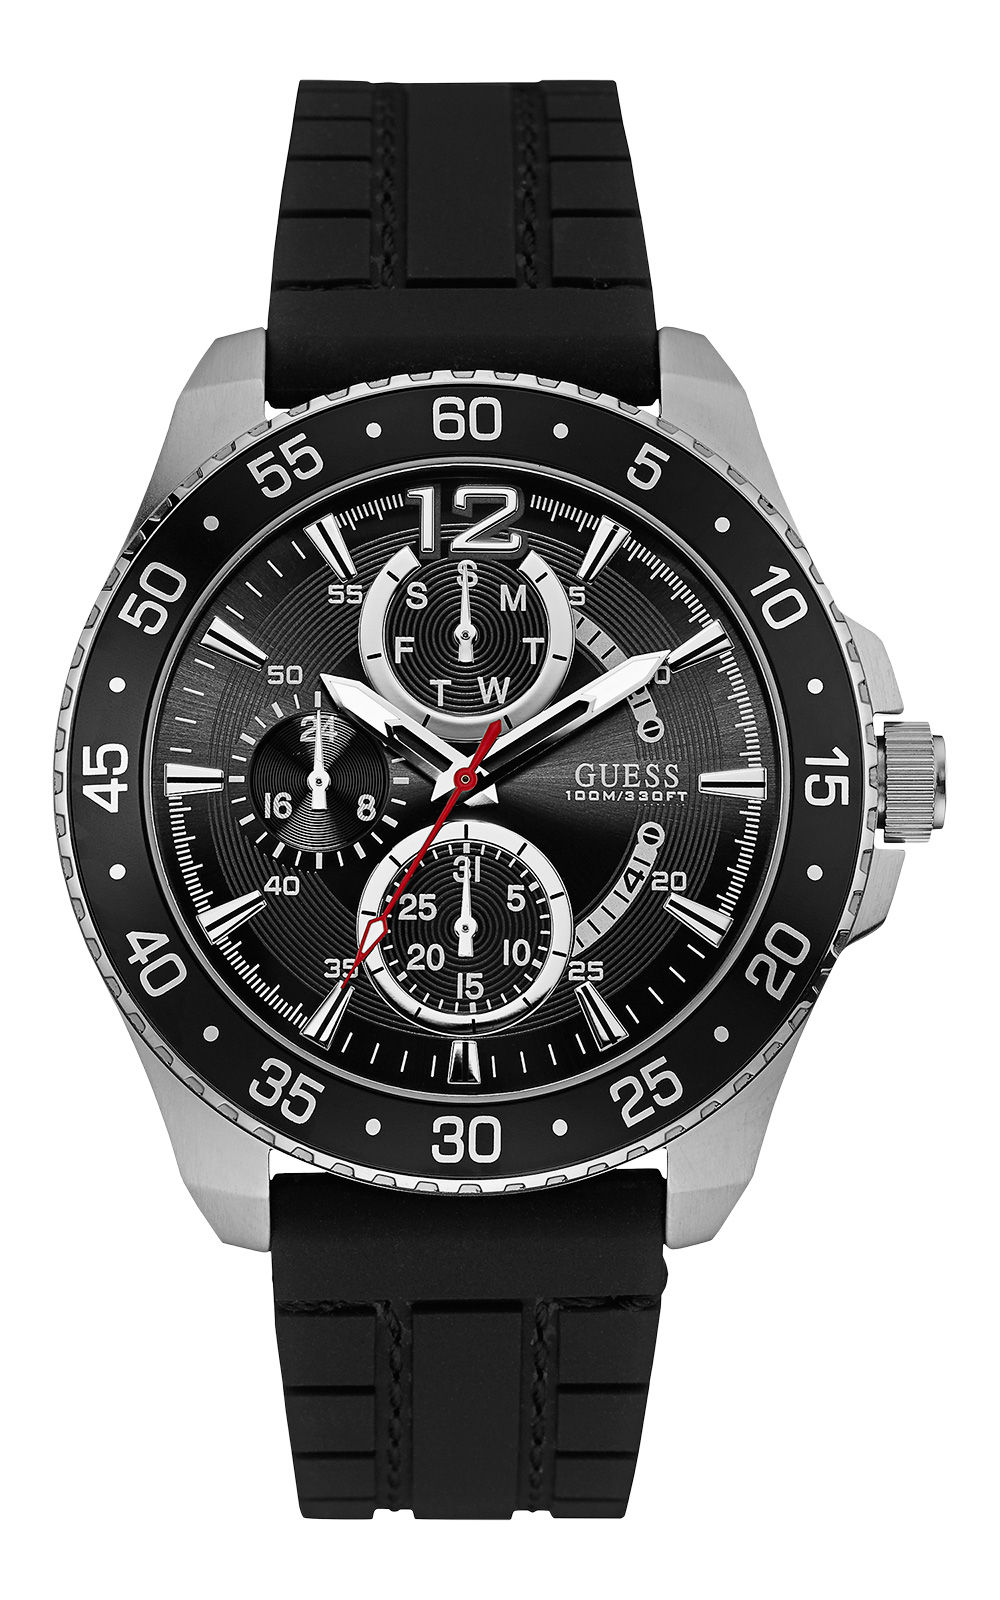 GUESS W0798G1 Ανδρικό Ρολόι Quartz Multi-Function 4004abc1f8c